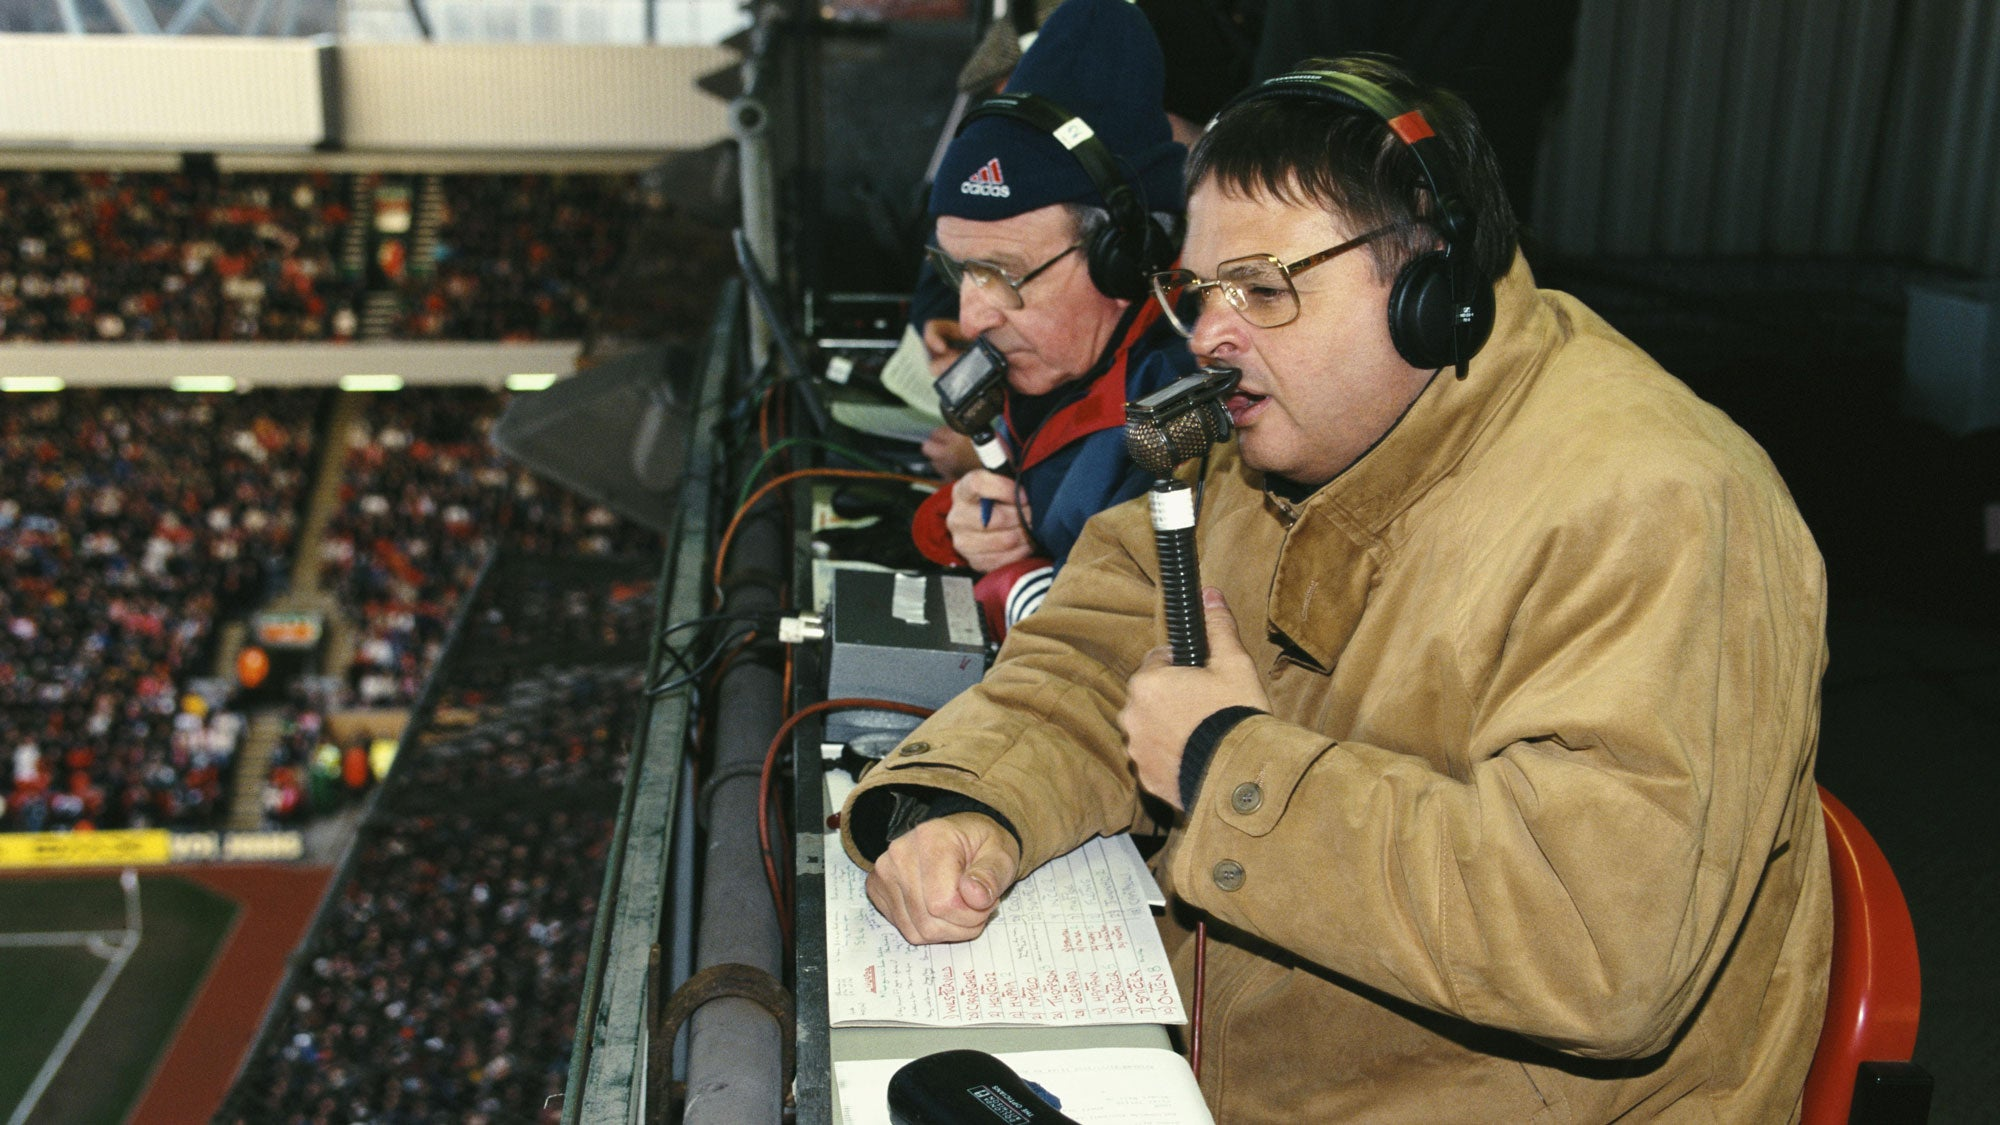 The longtime voice of football in the UK, Alan Green. | Adsum